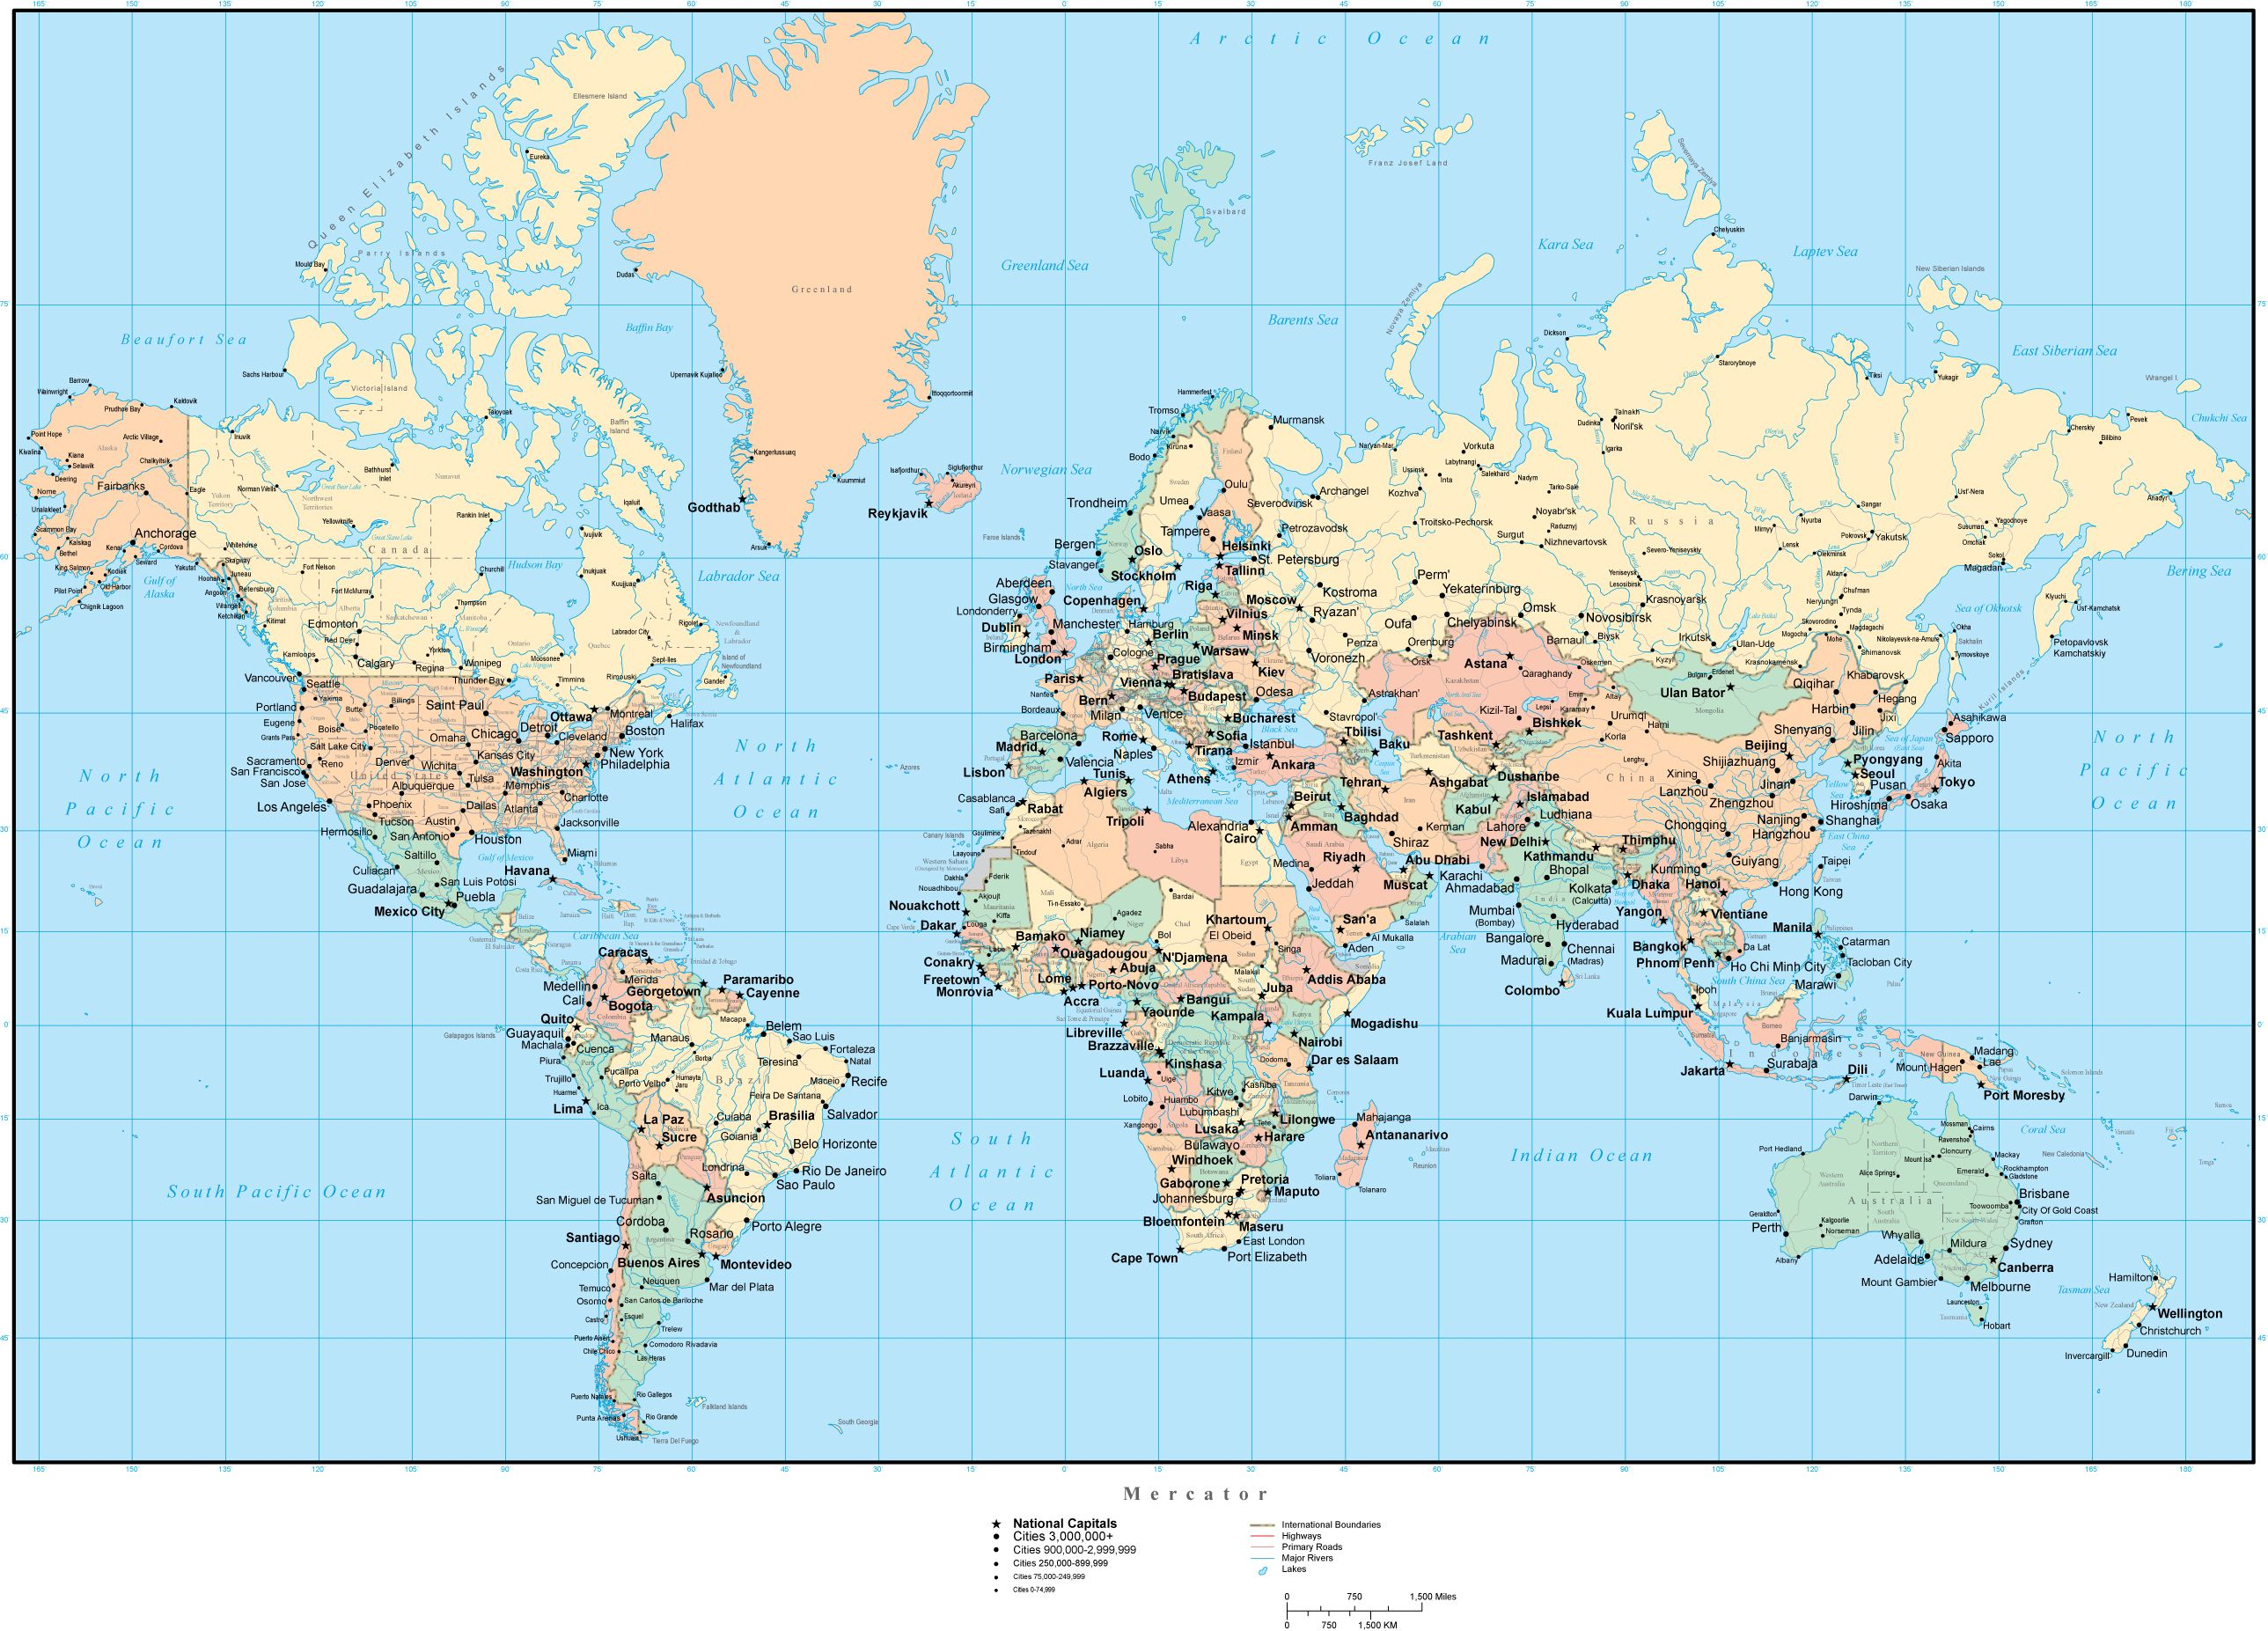 World Map With Countries US States Canadian Provinces Capital - Capital cities on map of us